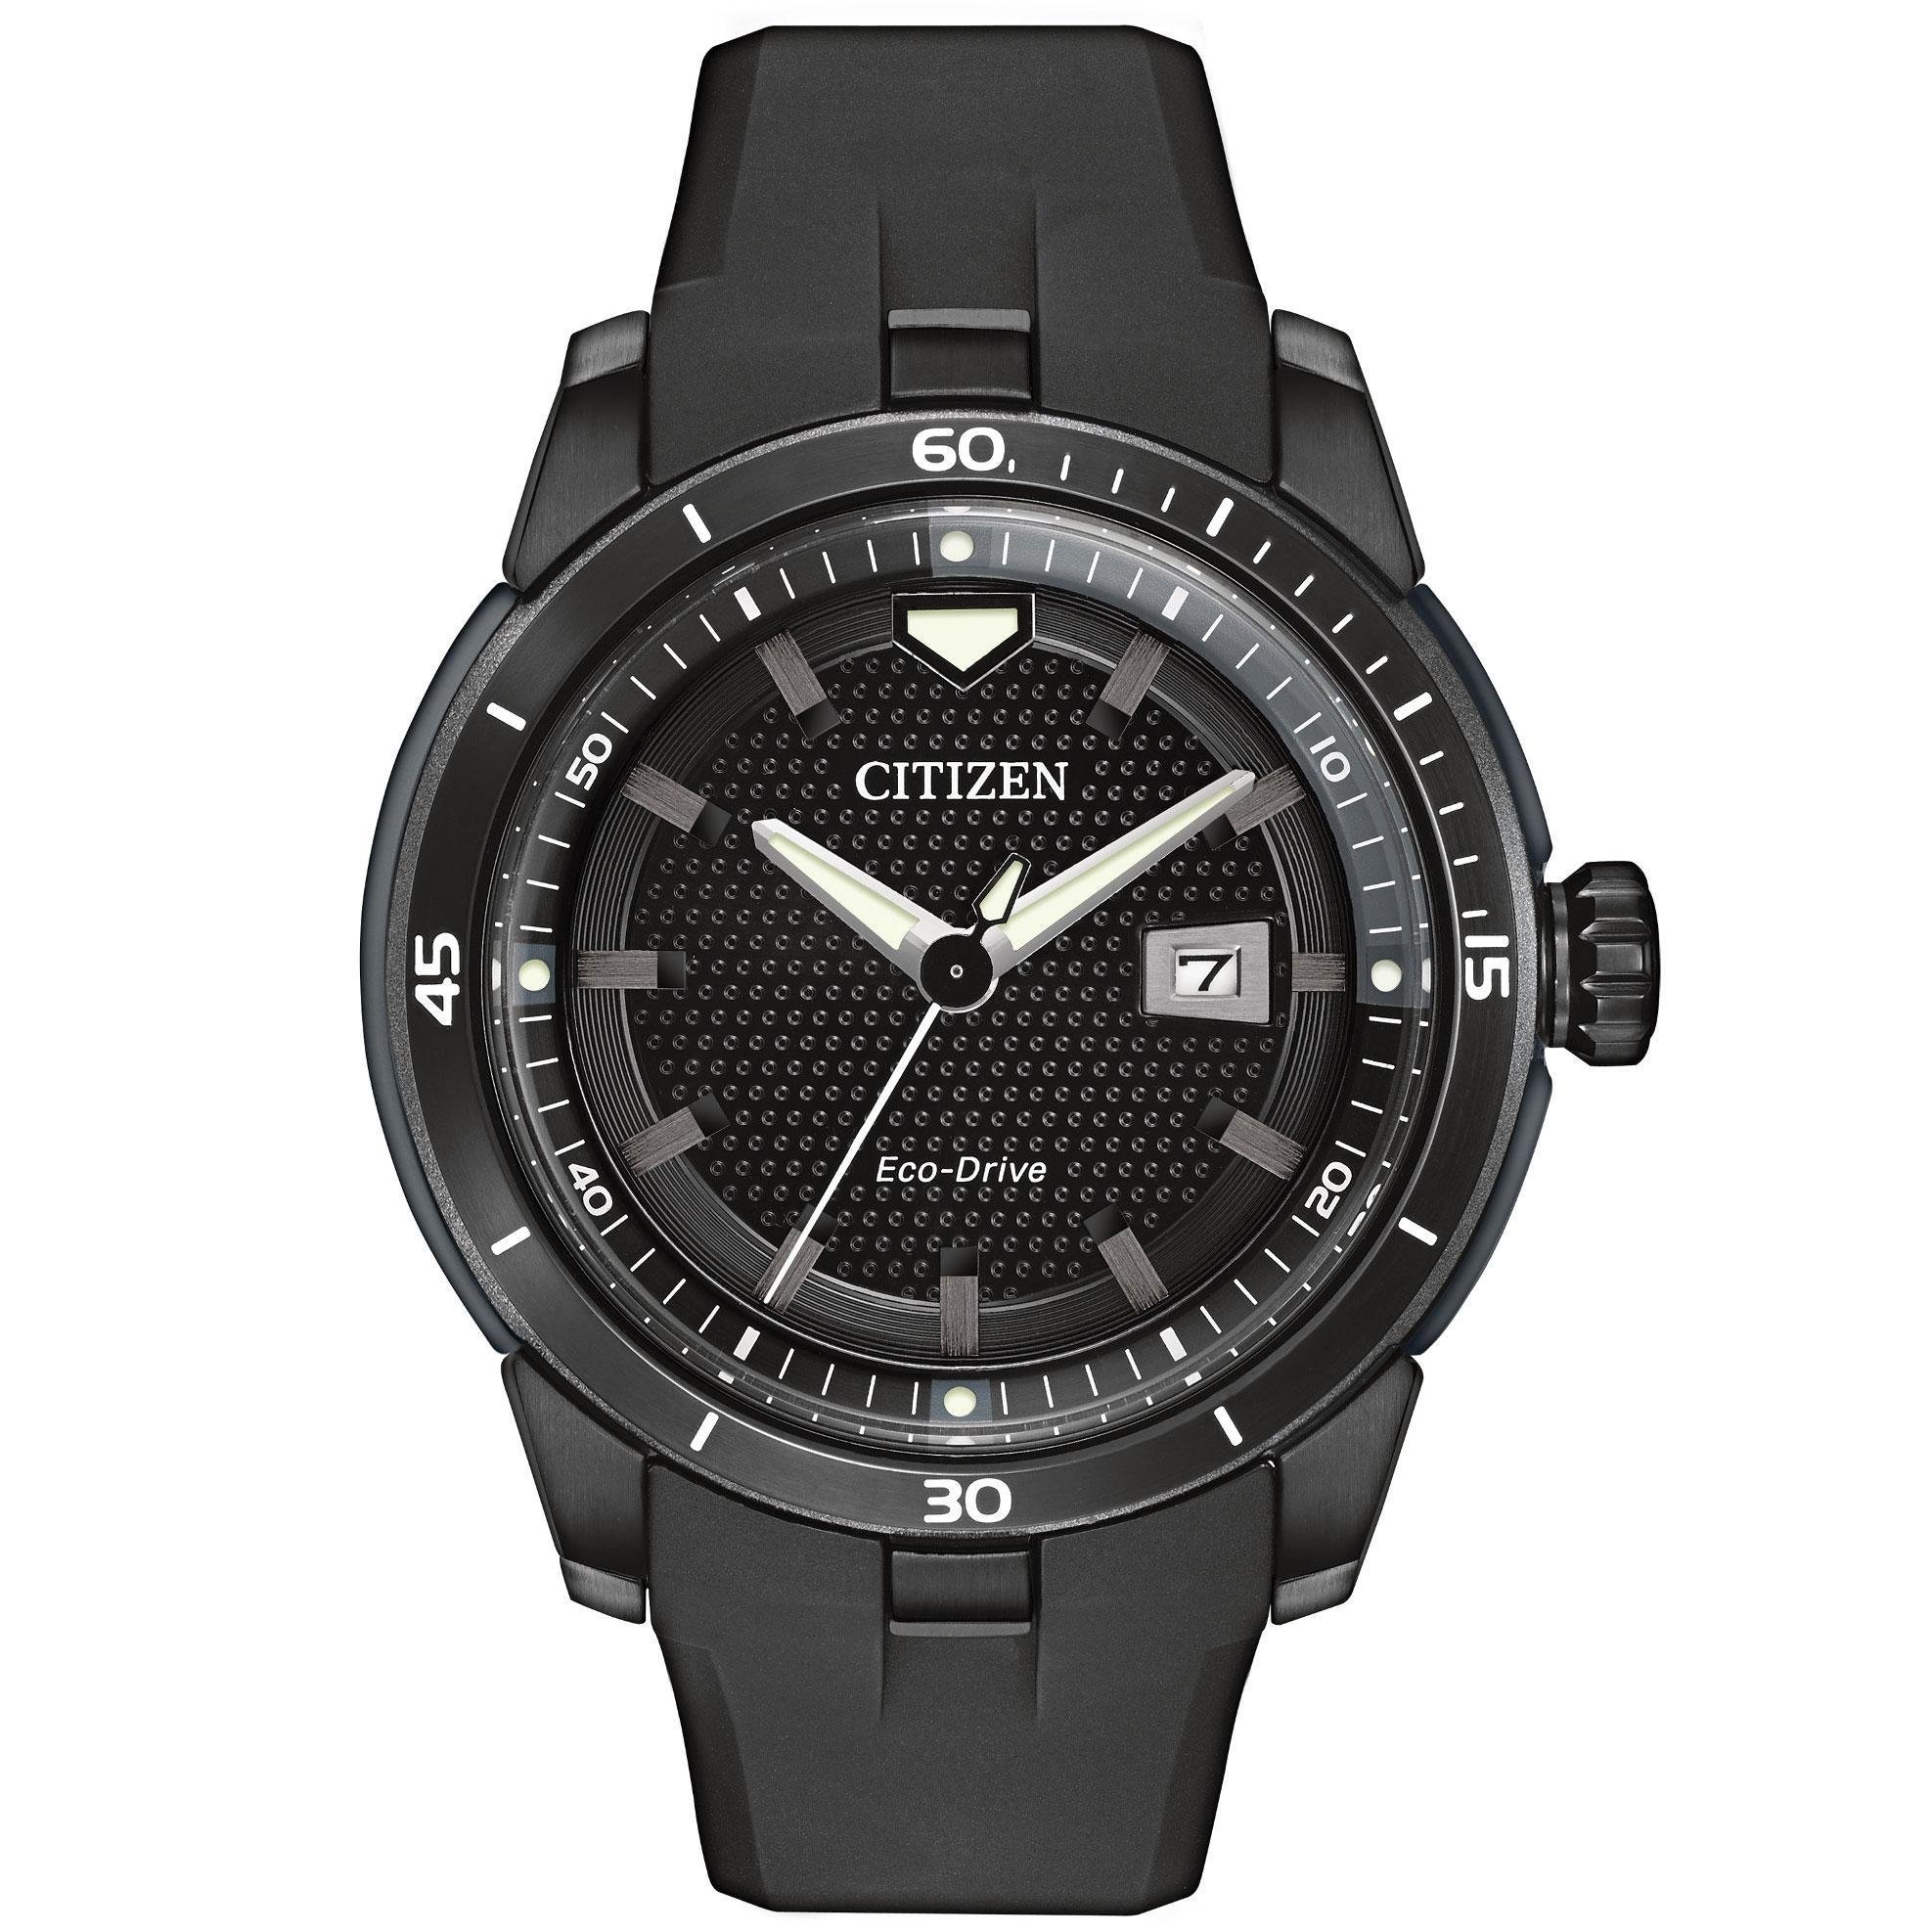 Citizen Eco-Drive Men's AW1477-15E Ecosphere Watch